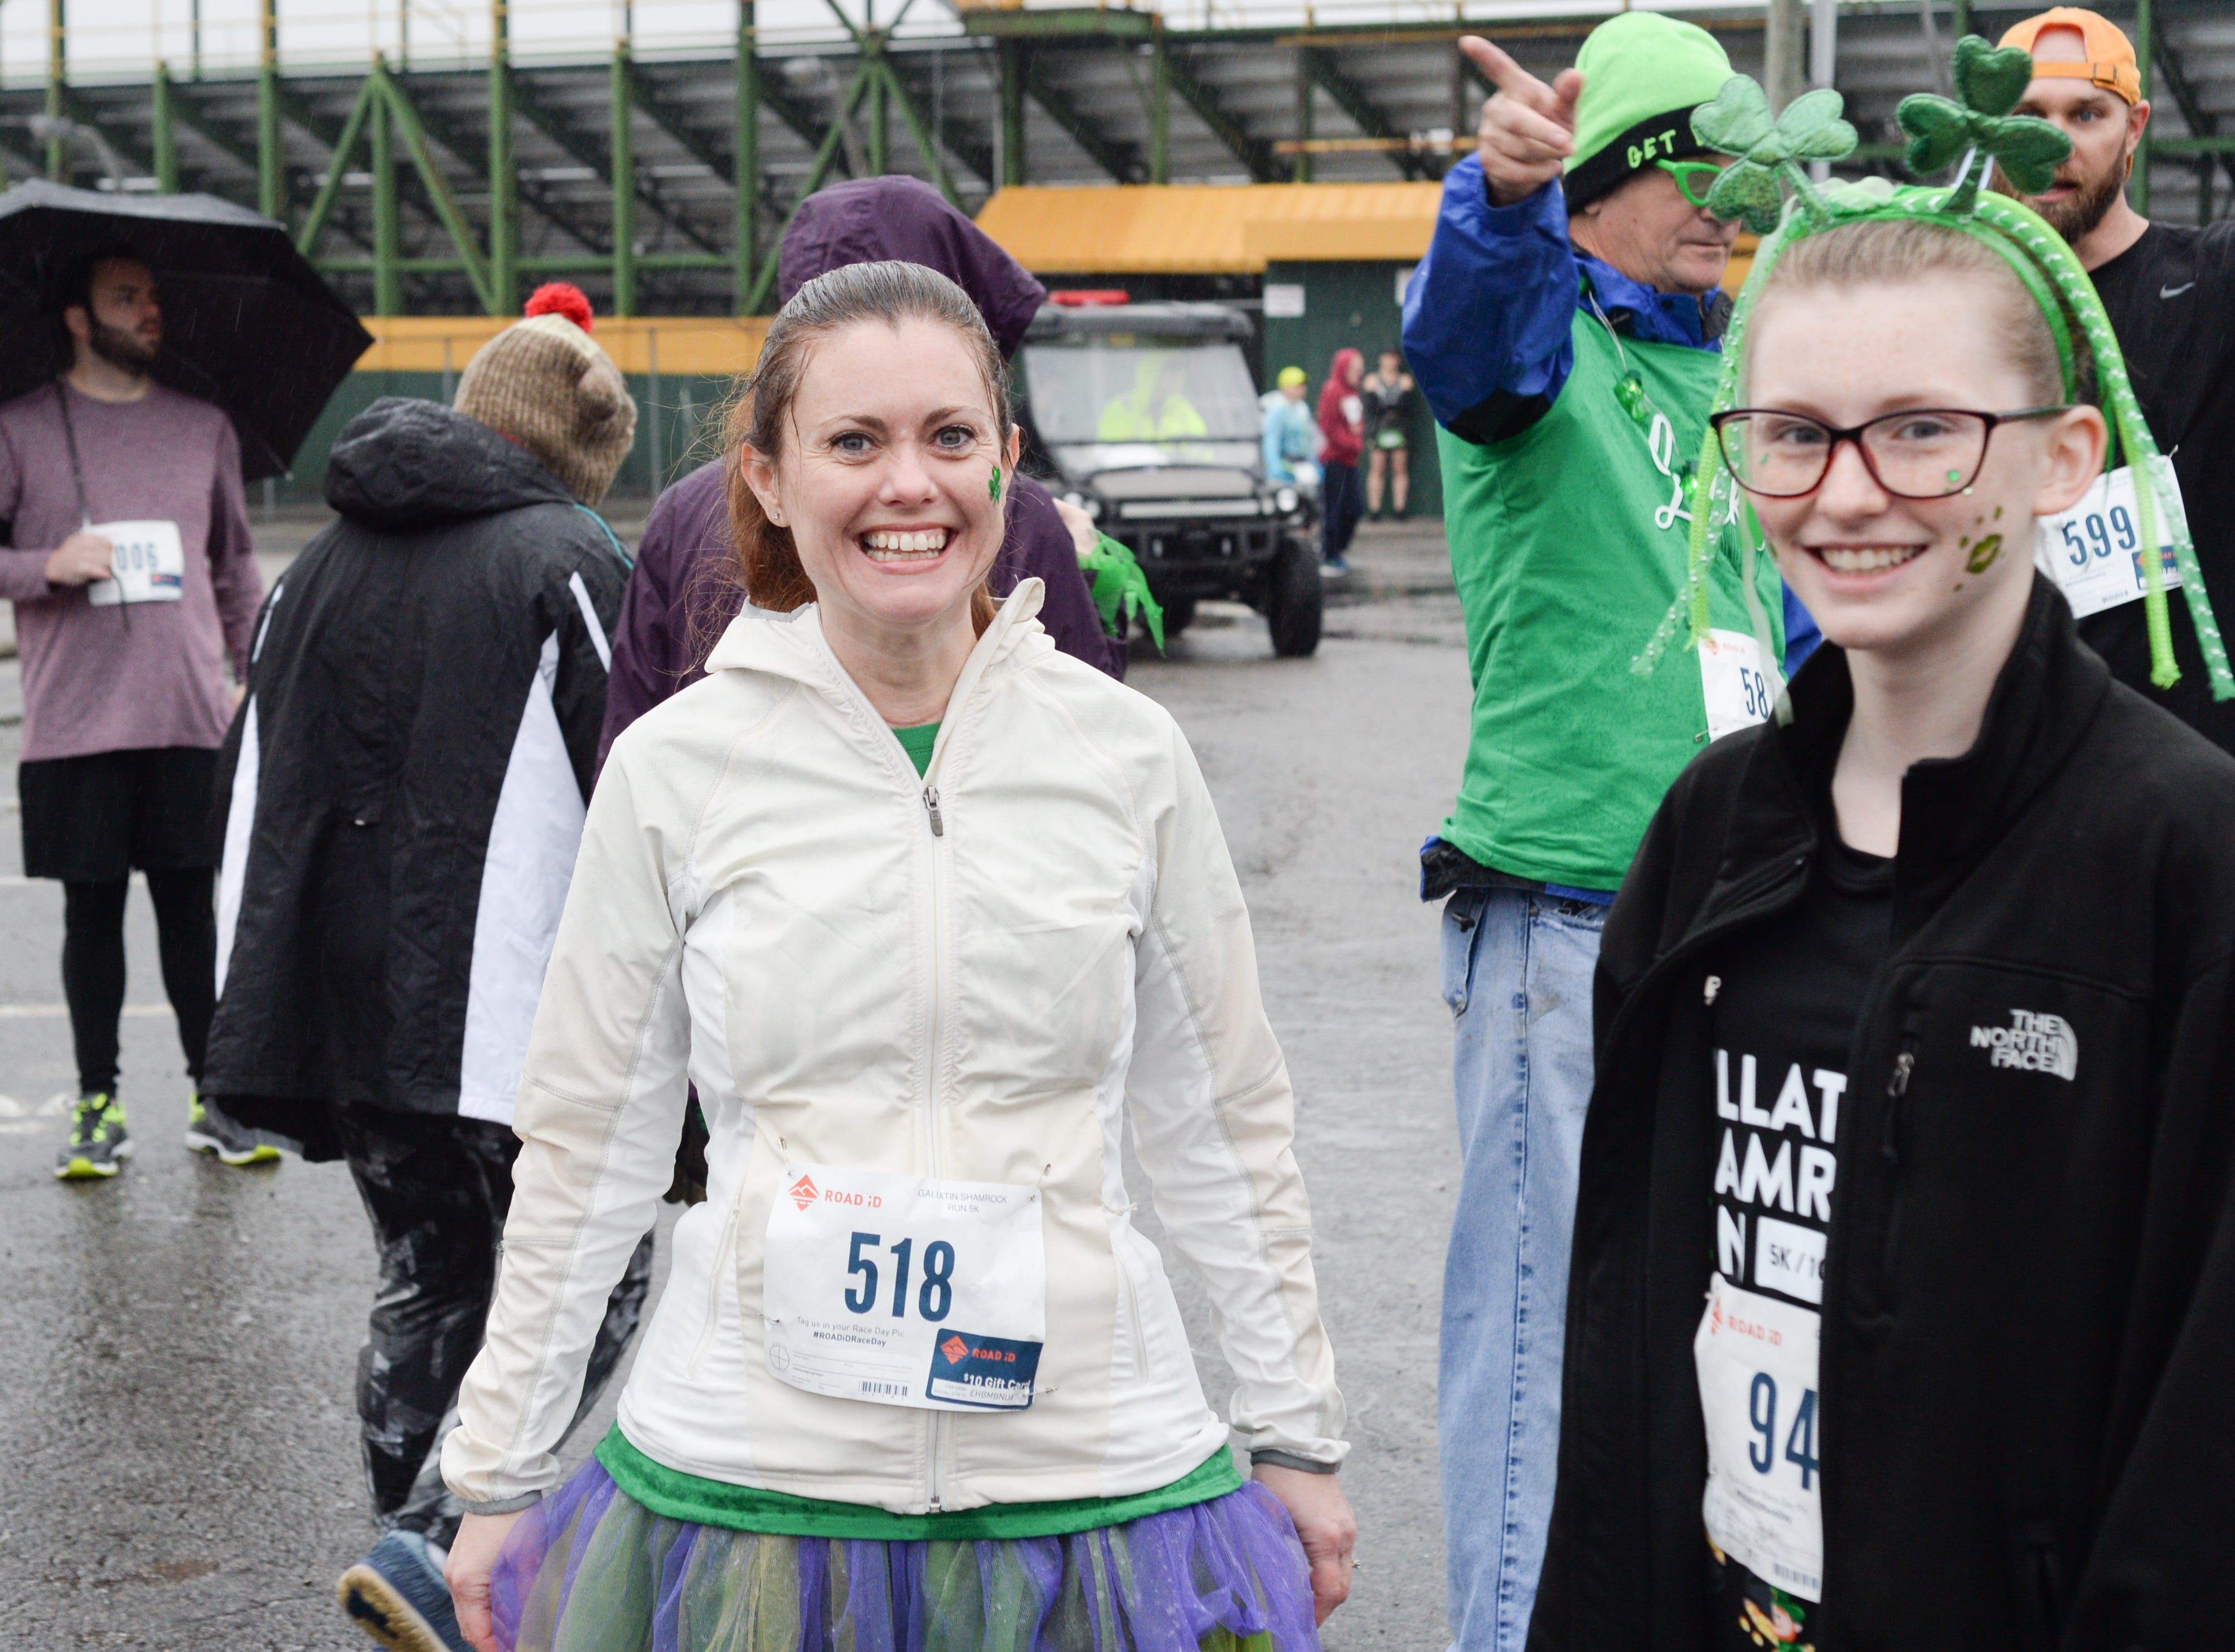 Shana Blankenship (left) has fun just before the Gallatin Shamrock Run on Saturday, March 9. Proceeds from the event are used to fund grants through the Gallatin Chamber Foundation for innovative educational programs for students K-12 in the city of Gallatin.